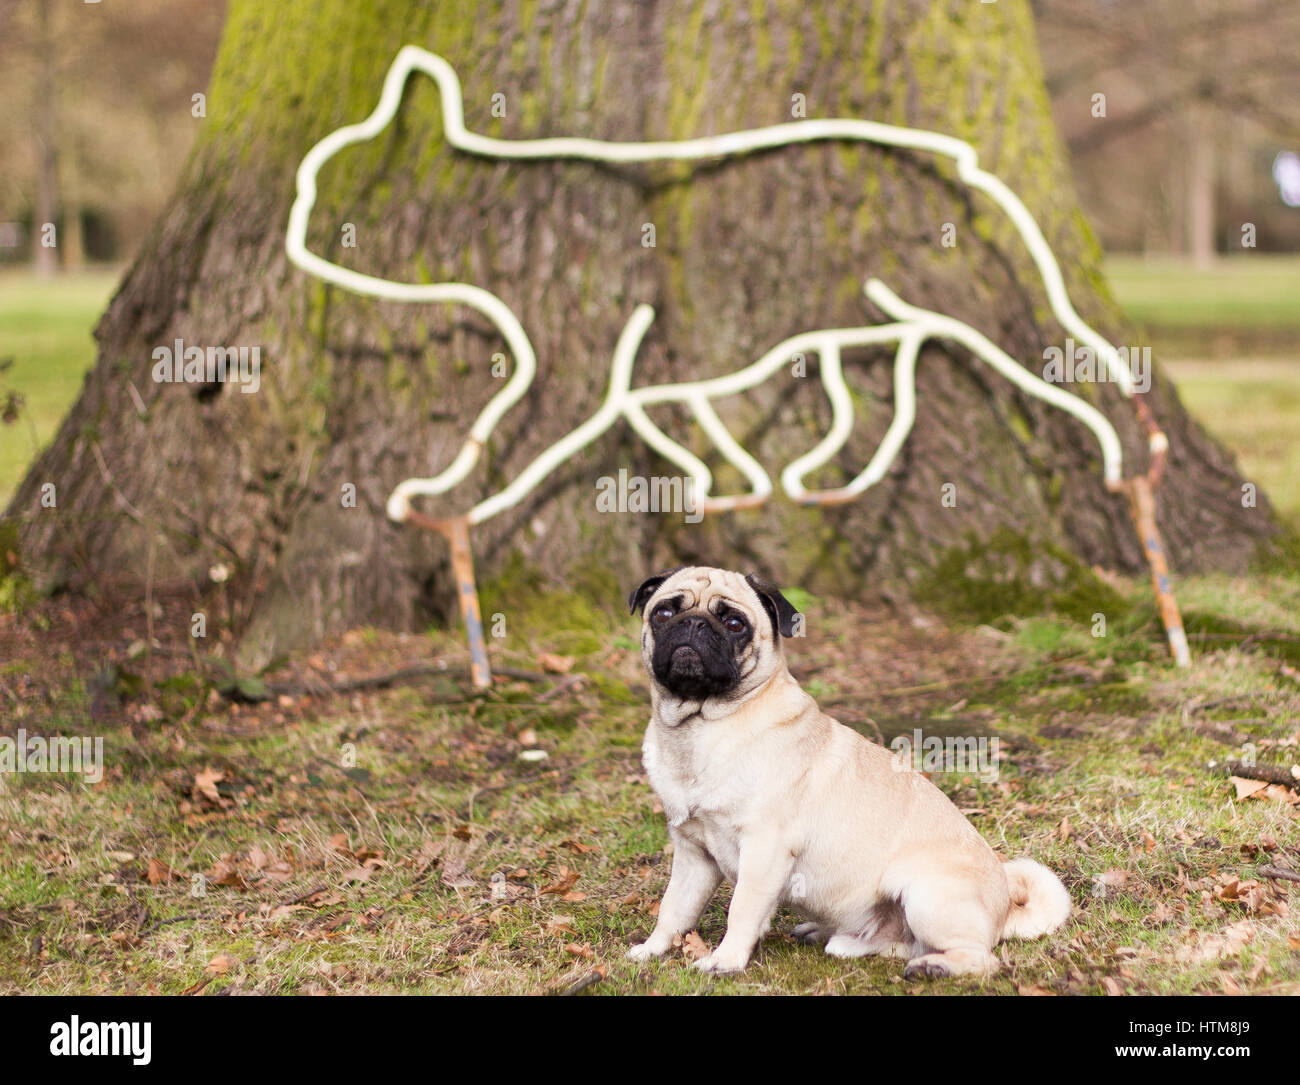 'Mans best friend' strikes a pose alongside a metal sculpture in a nature setting - Stock Image